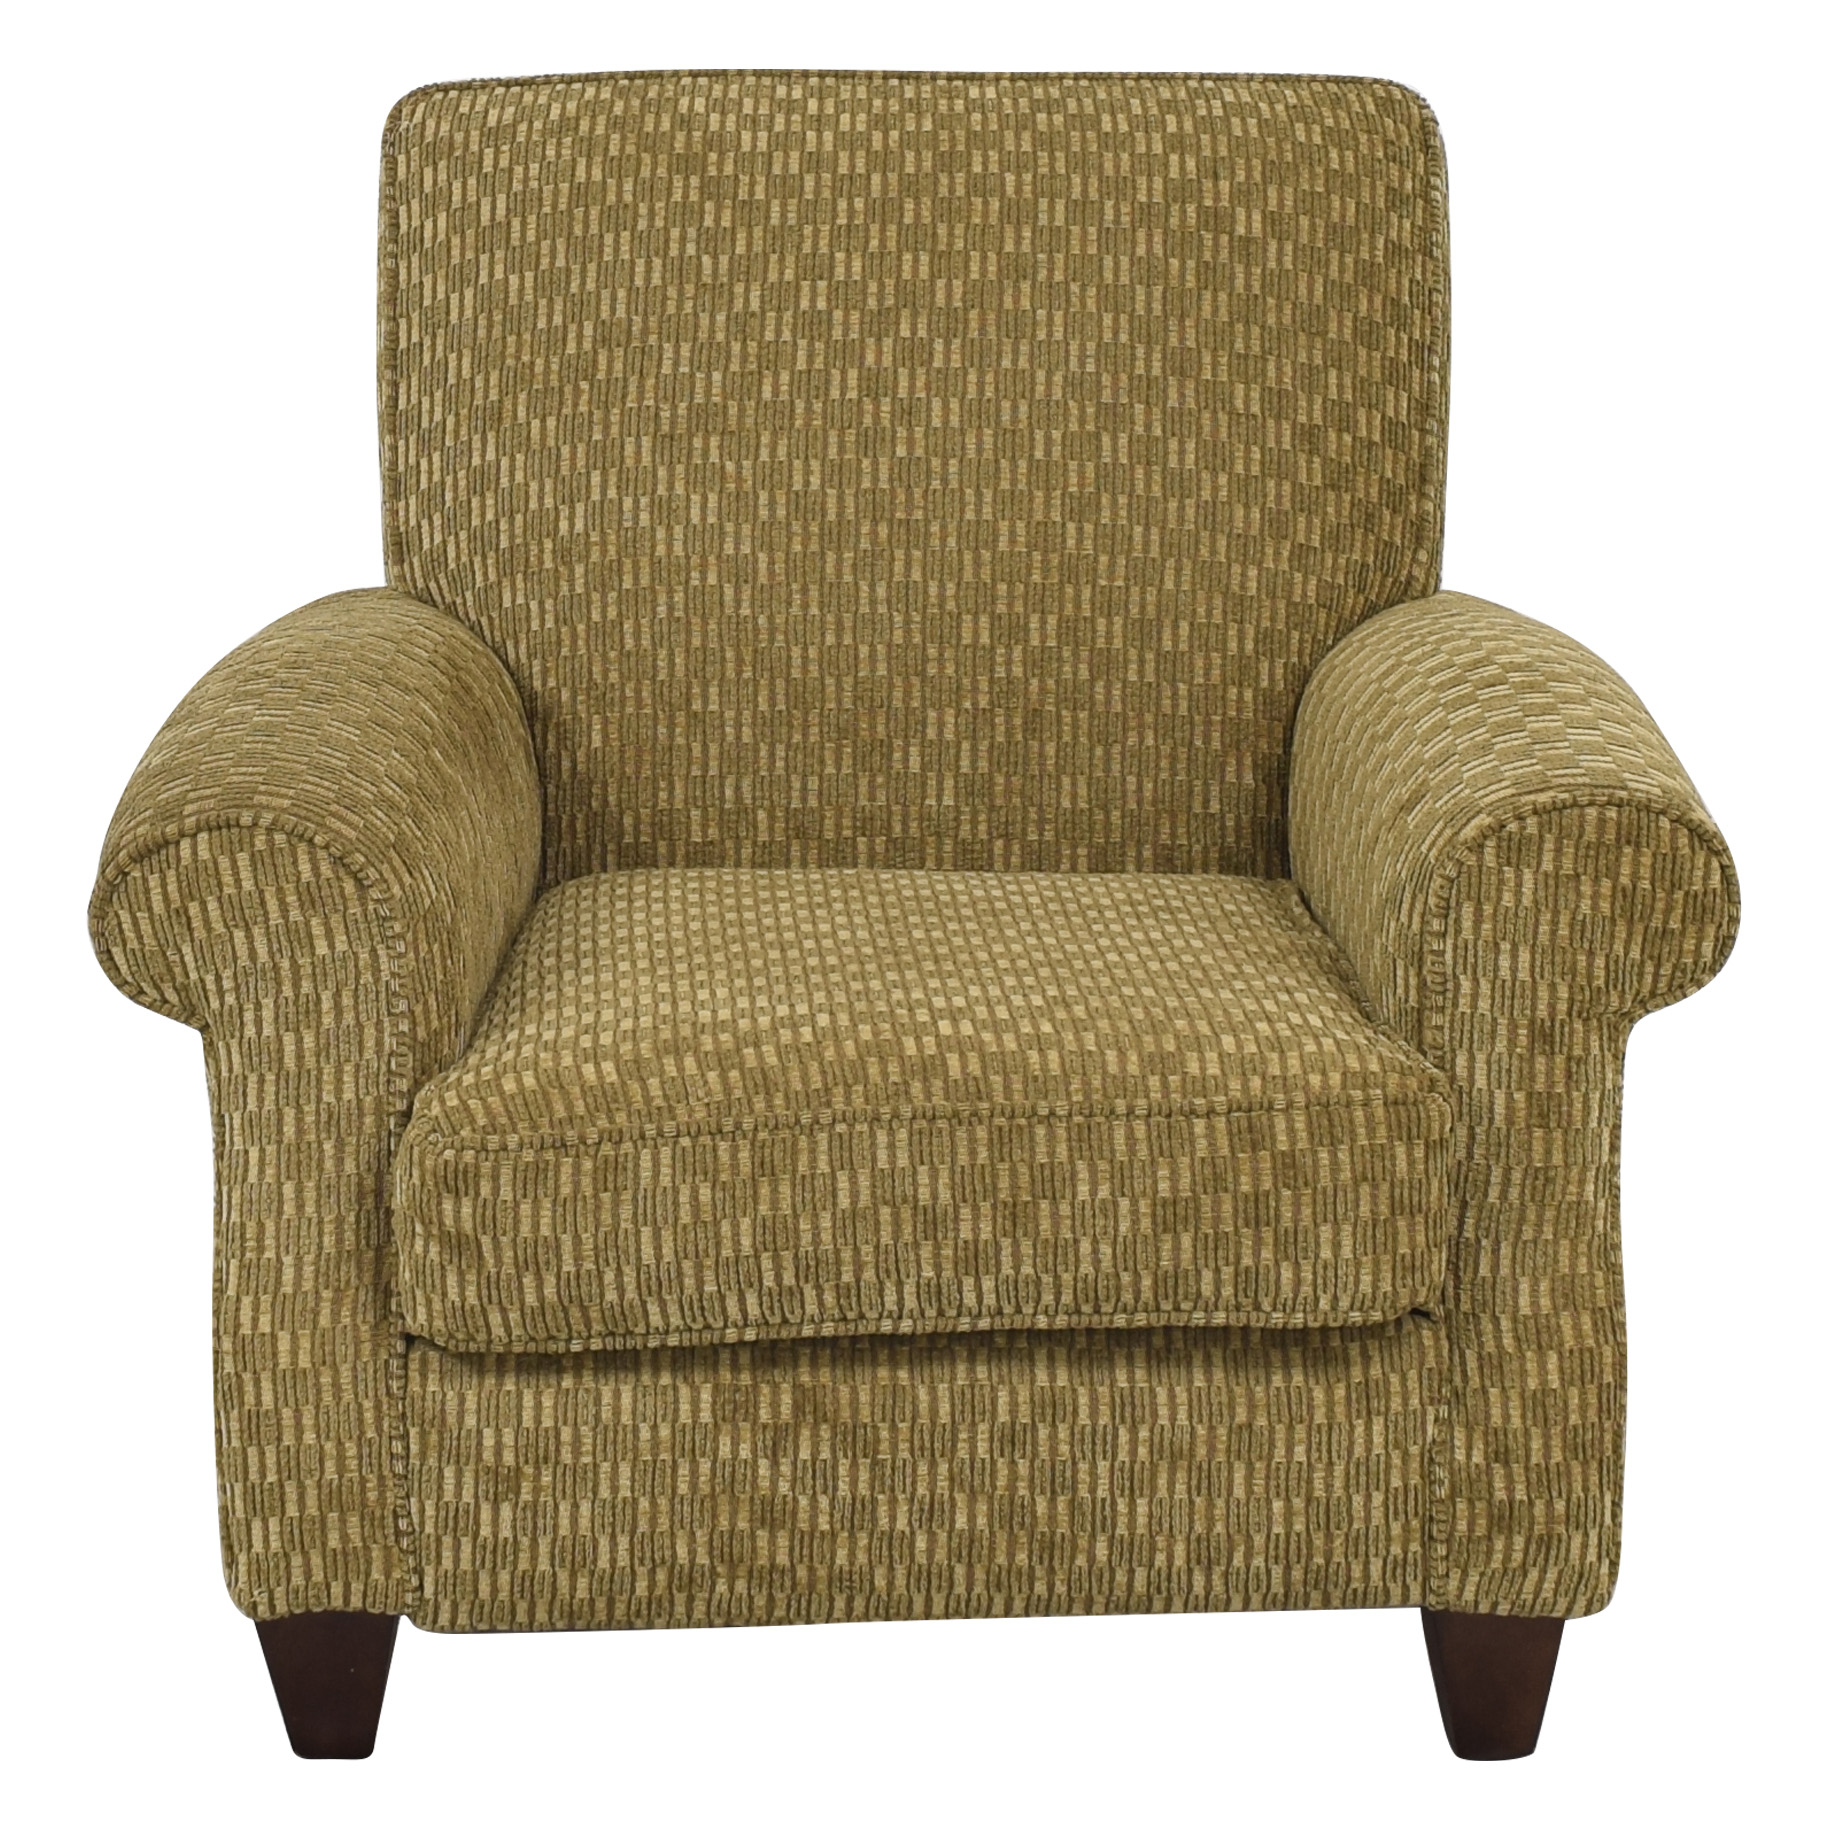 shop Alan White Alan White Casual Stationary Accent Chair online